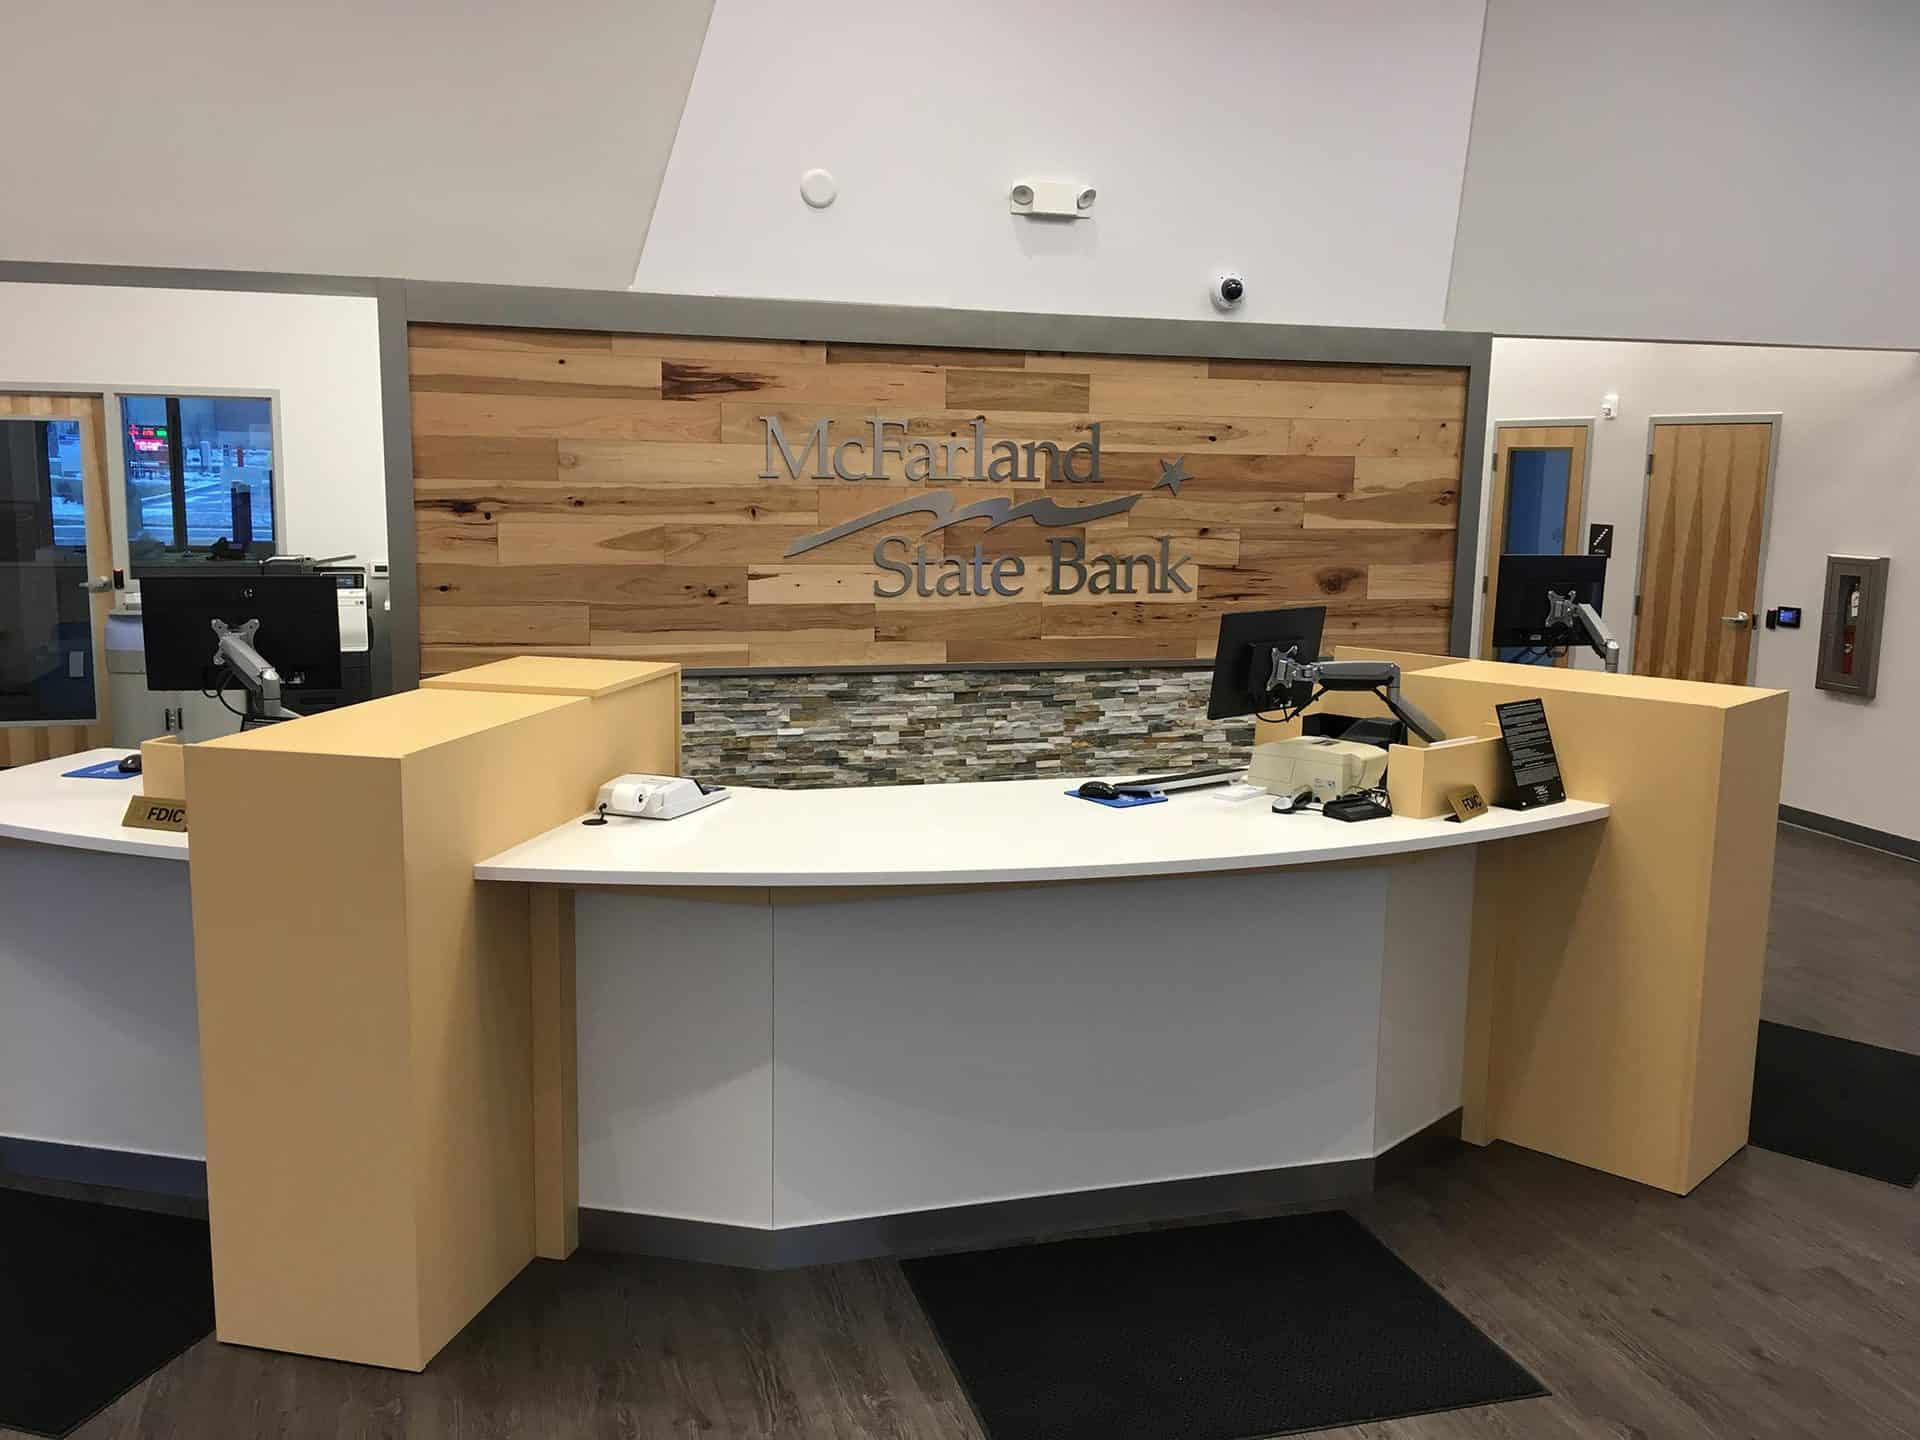 McFarland State Bank front entrance desk